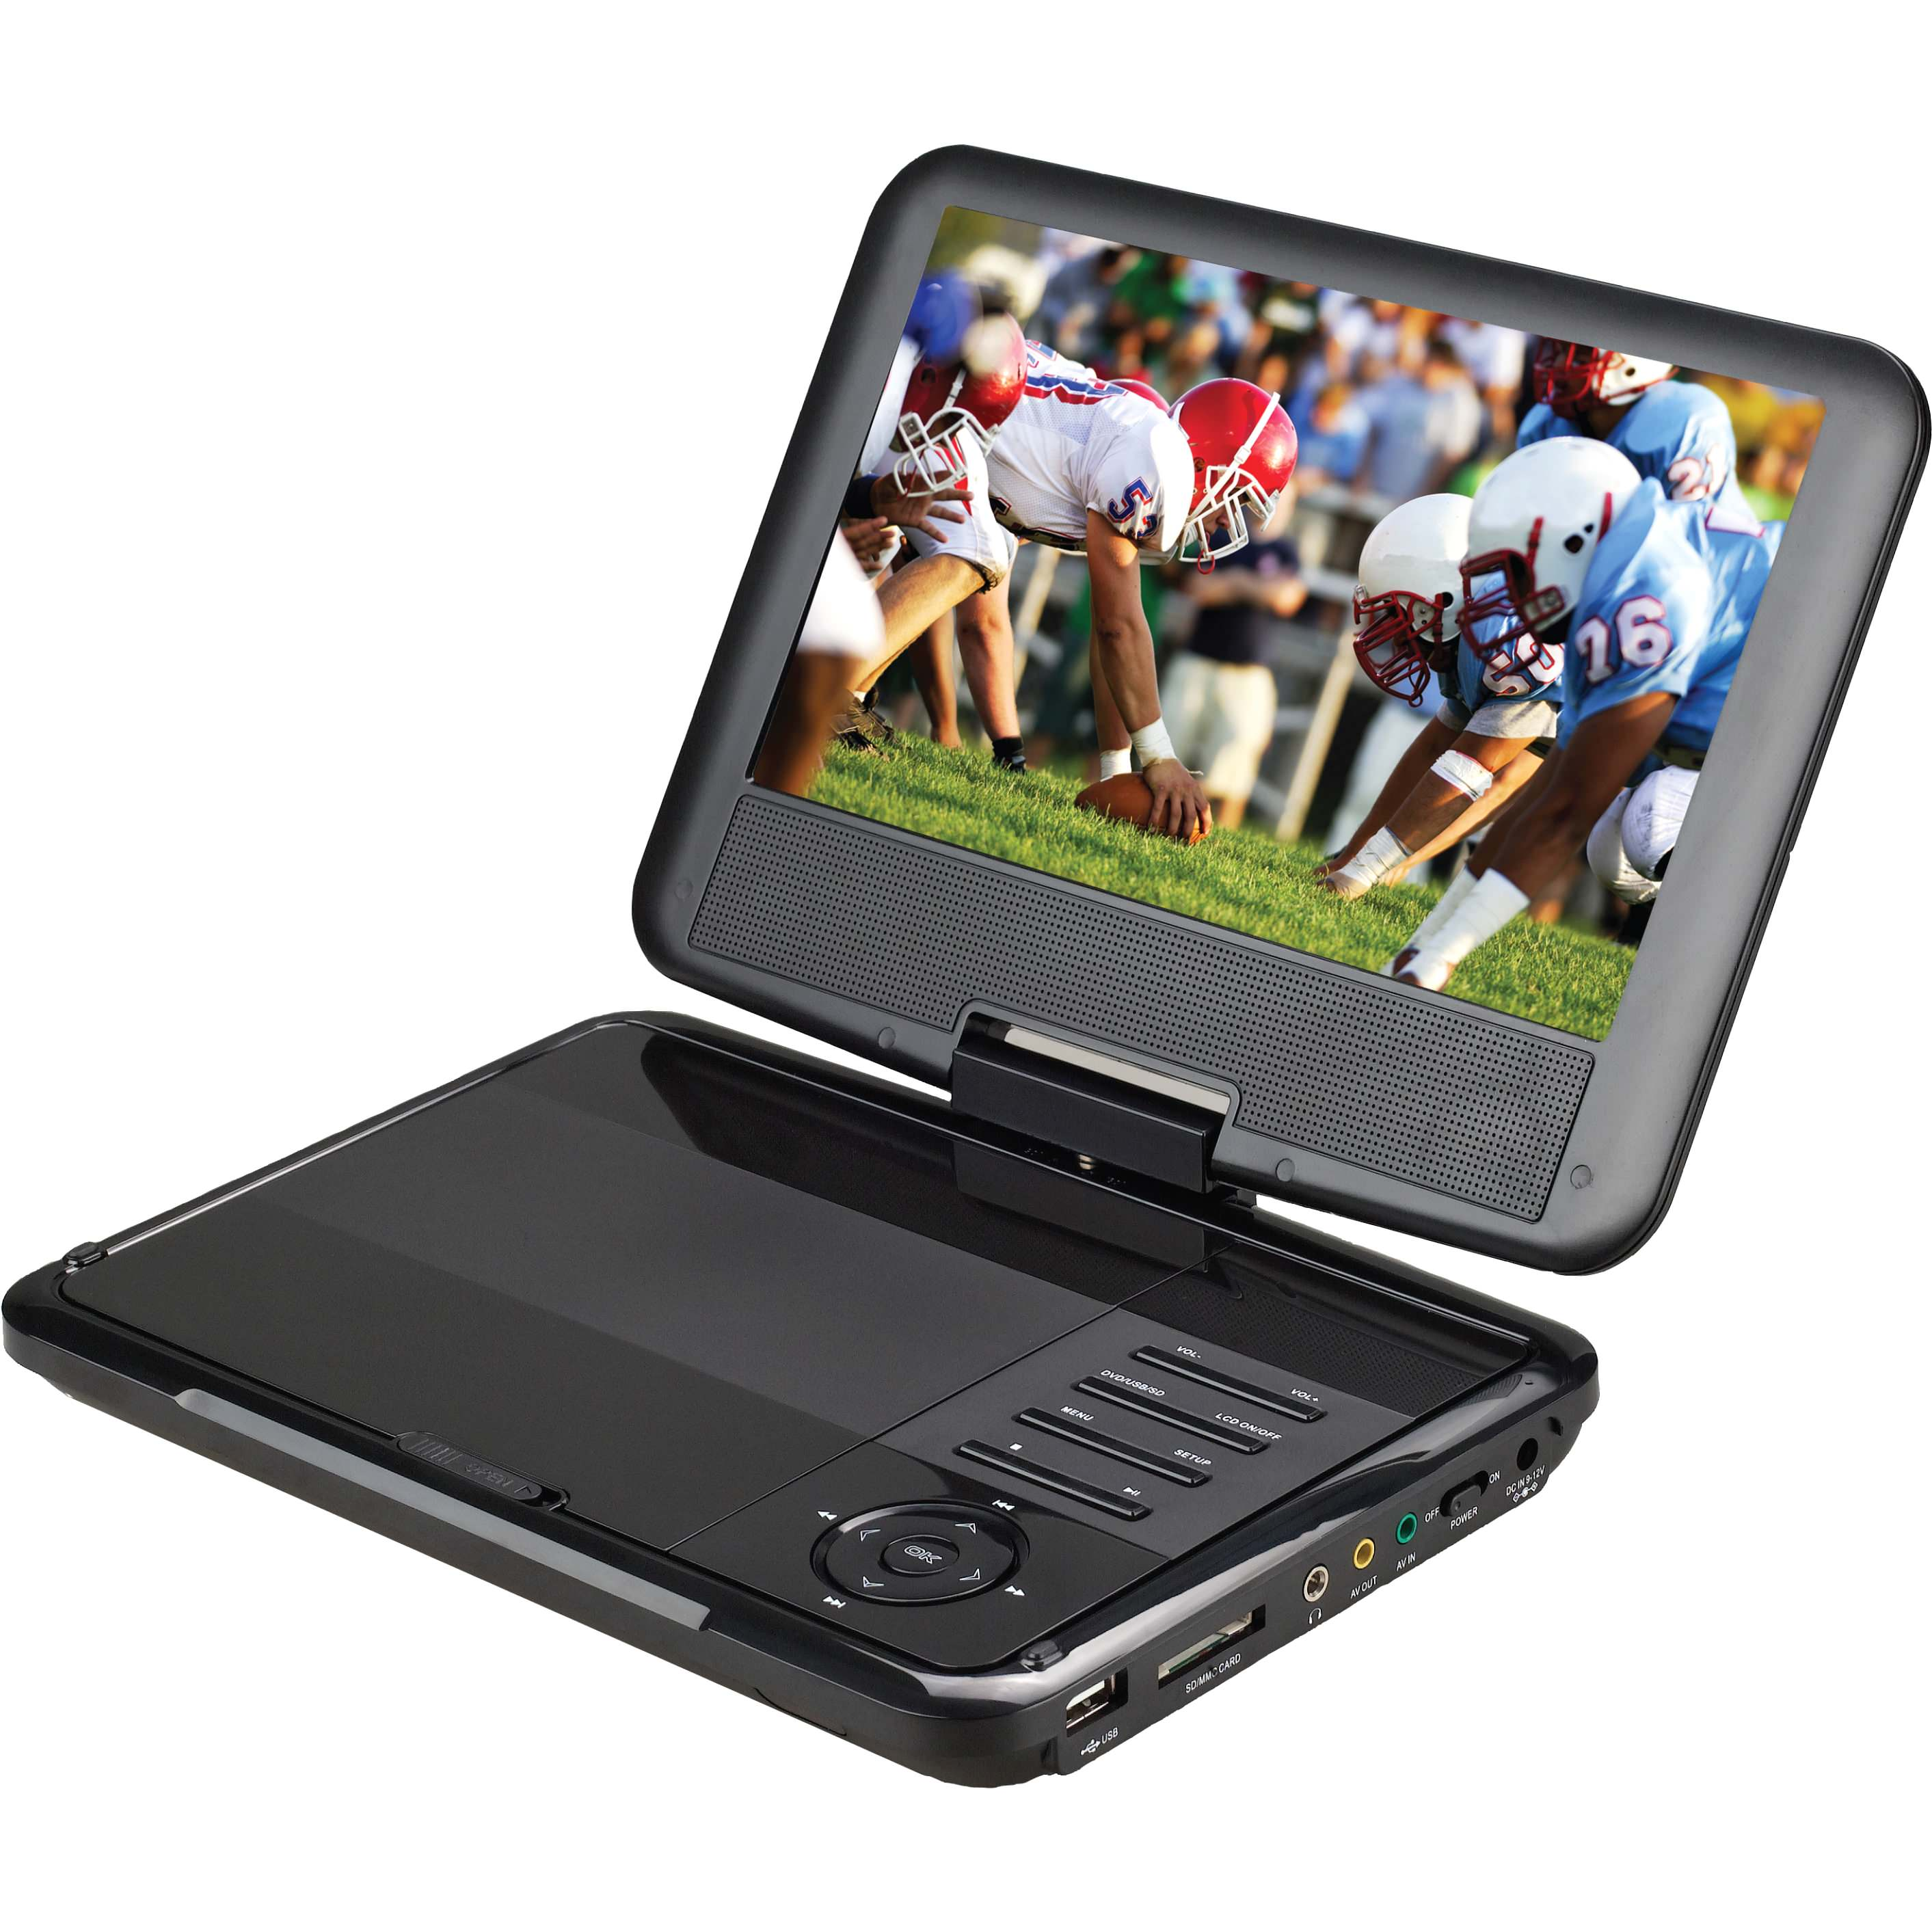 "9"" Portable DVD Player with Swivel Display"